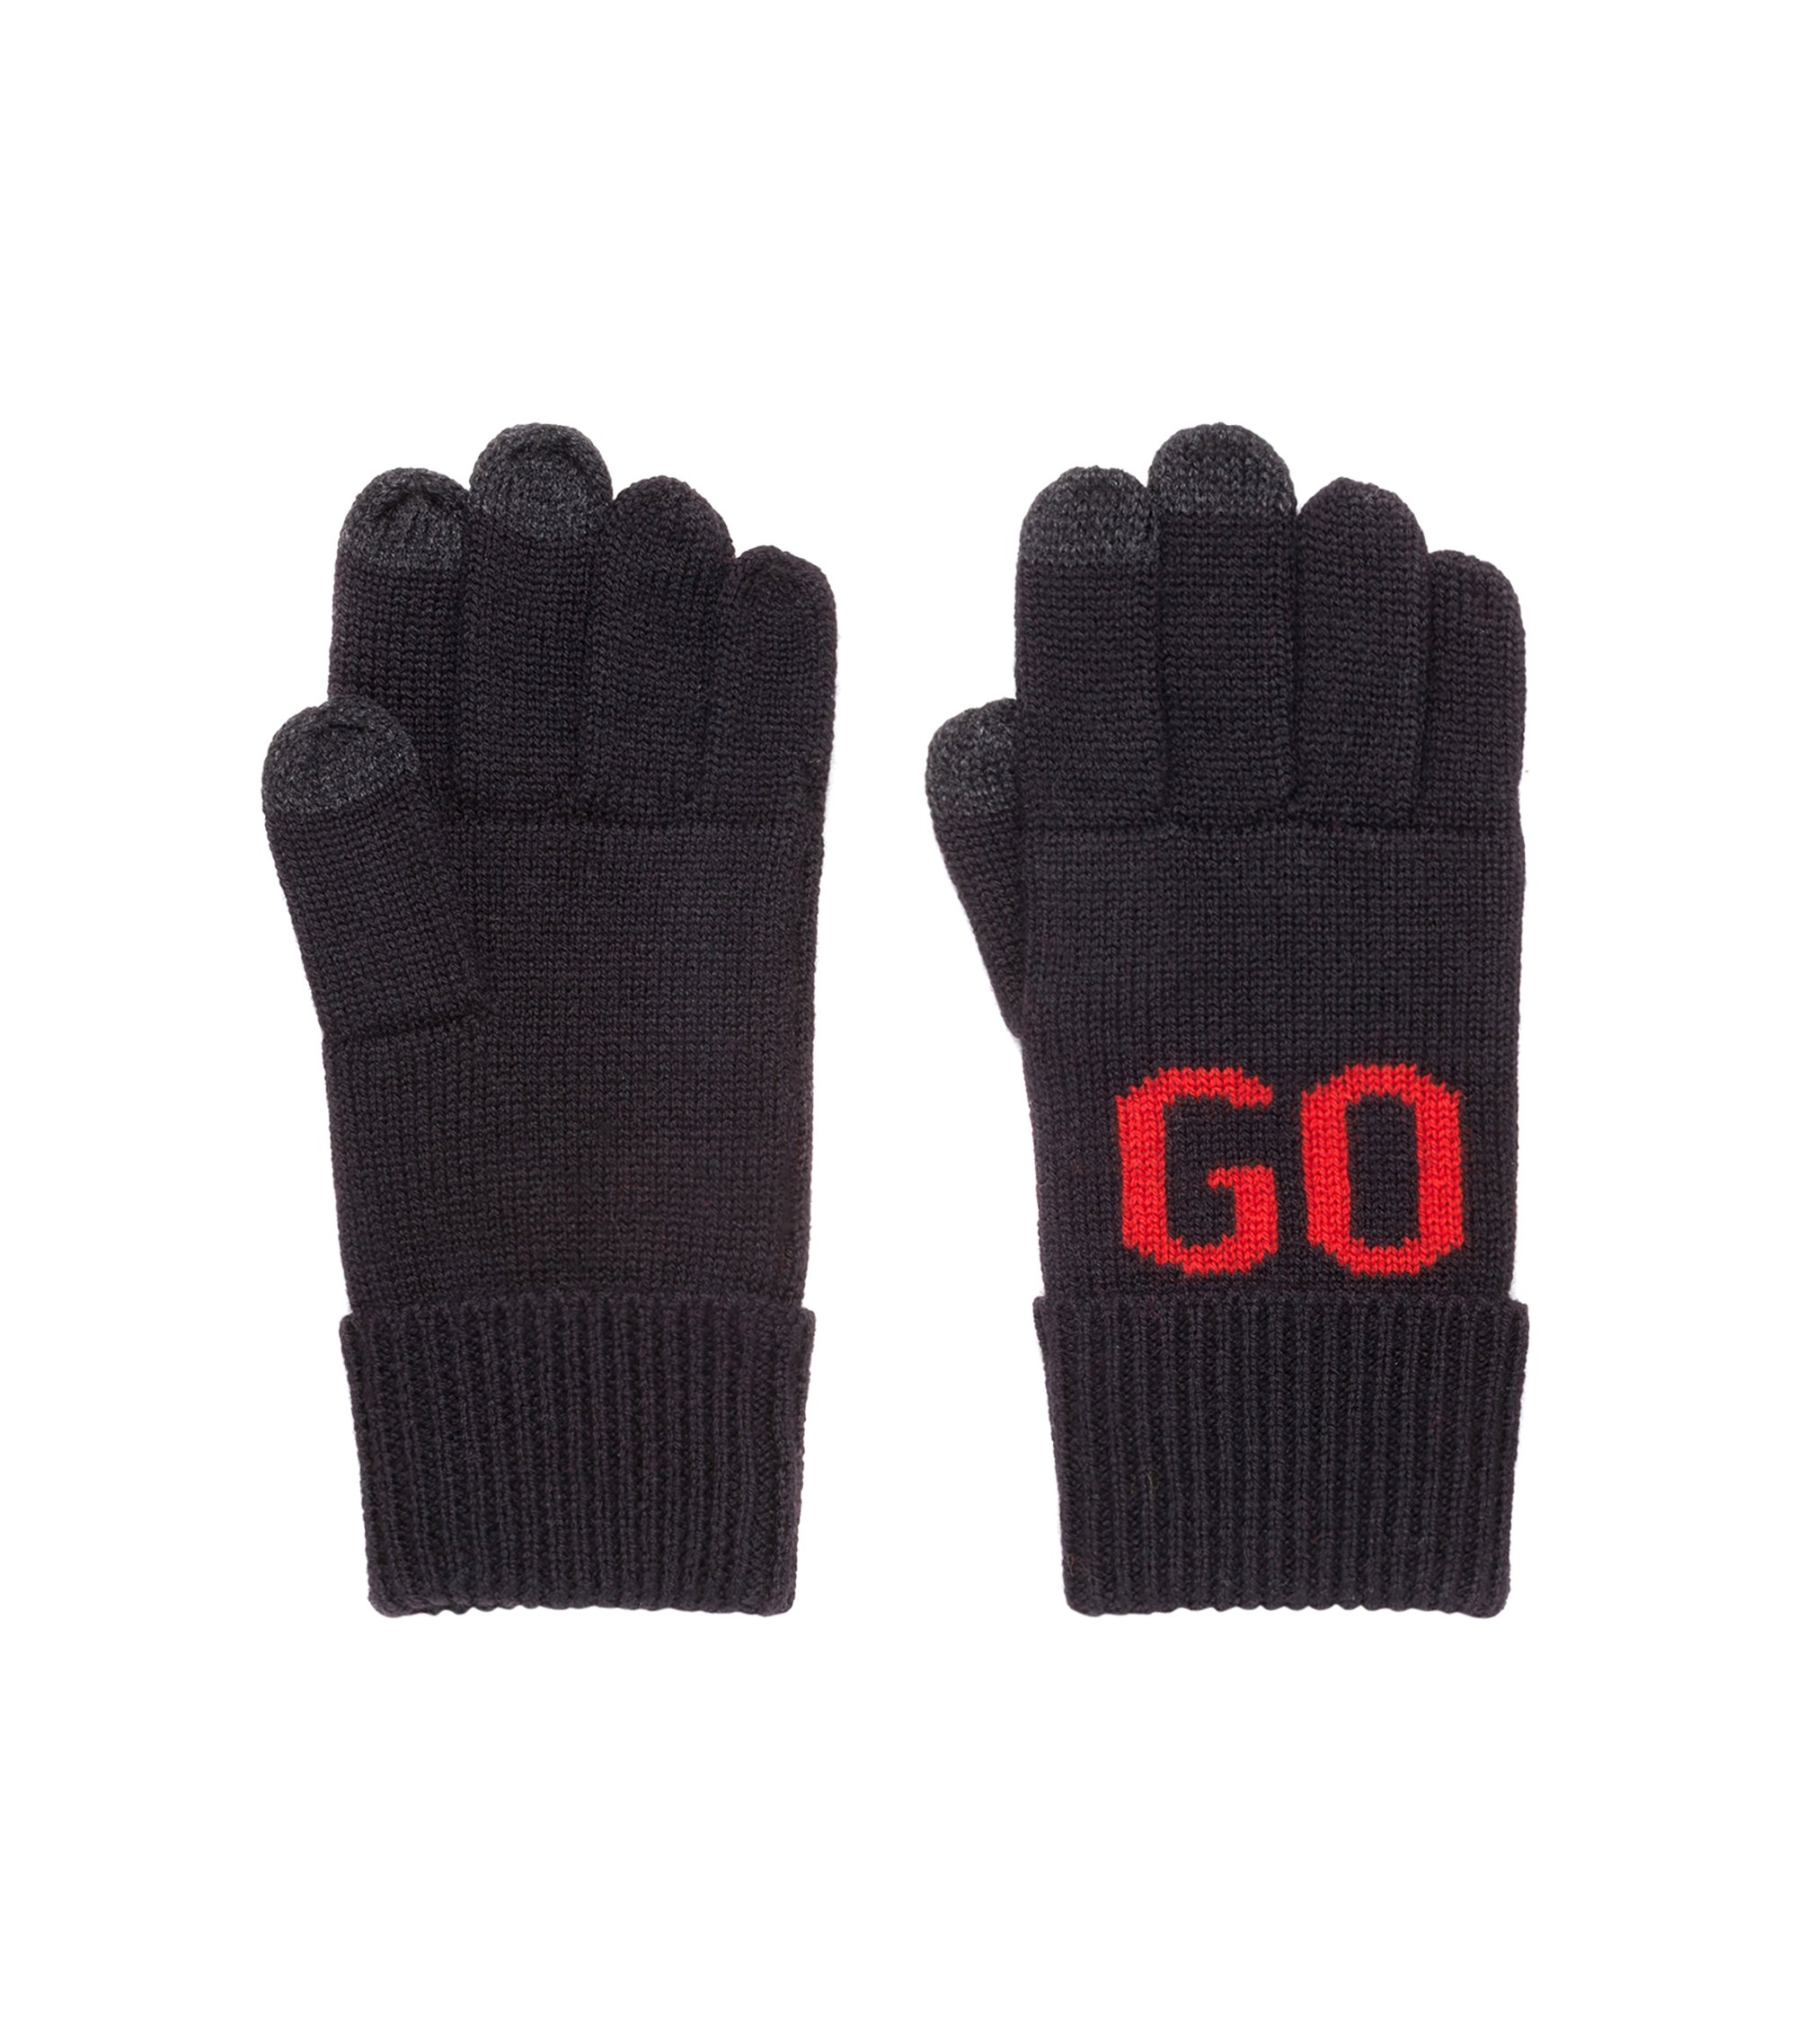 Wool-blend logo gloves with touchscreen fingers, Black